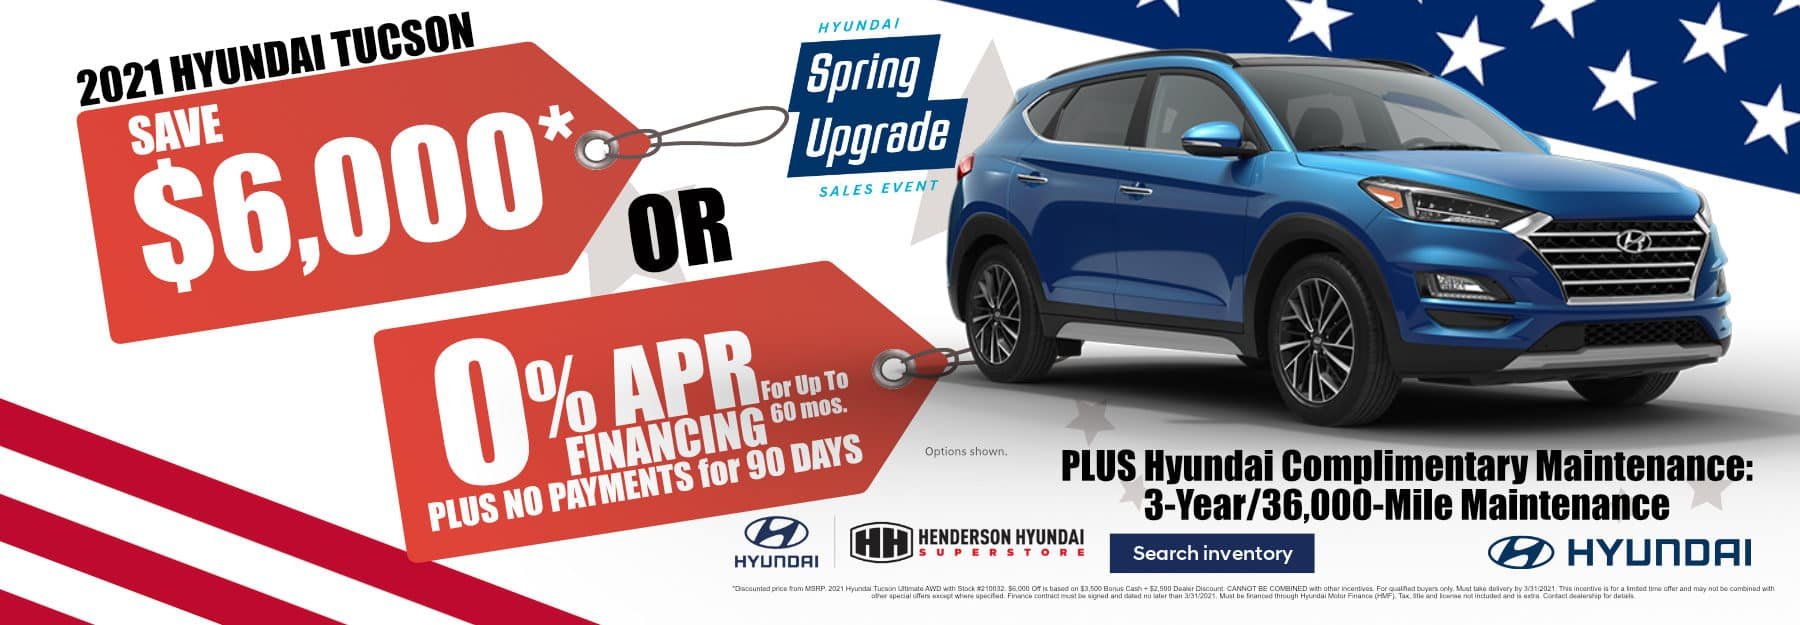 NEW_March_2021_MY21TuCSON$6,000_Henderson_Hyundai